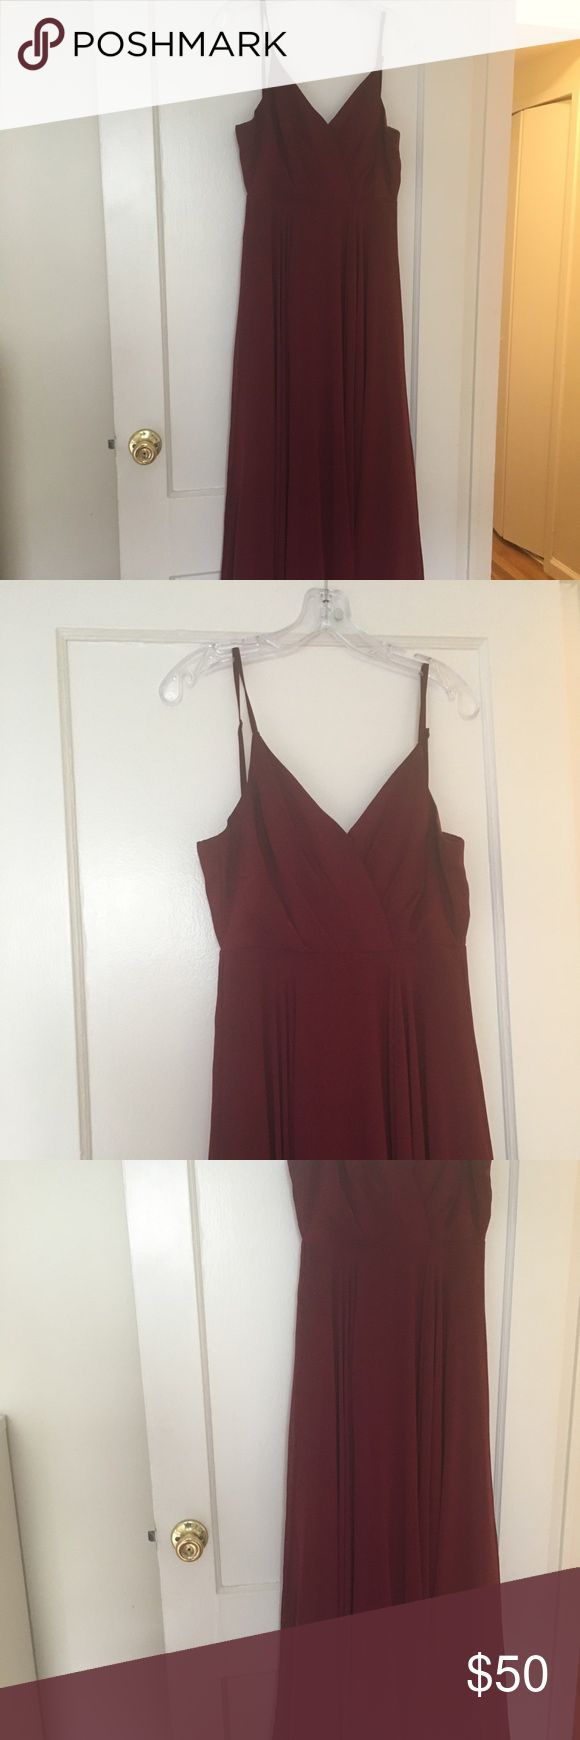 "Lulu's Burgundy/Maroon Full Length Dress Perfect for a bridesmaids dress or formal event. I had it hemmed so it's perfect for a person around 5'3"" with heels (my heels were 4"" tall, I'm 5'3"", and this dress fell perfectly so that I wasn't stepping on it but you couldn't see my feet). It also has a clasp in front that you can use if you want the top a bit snugger. It's only been worn once and is beautiful on - very flowy and elegant. Lulu's Dresses Wedding"